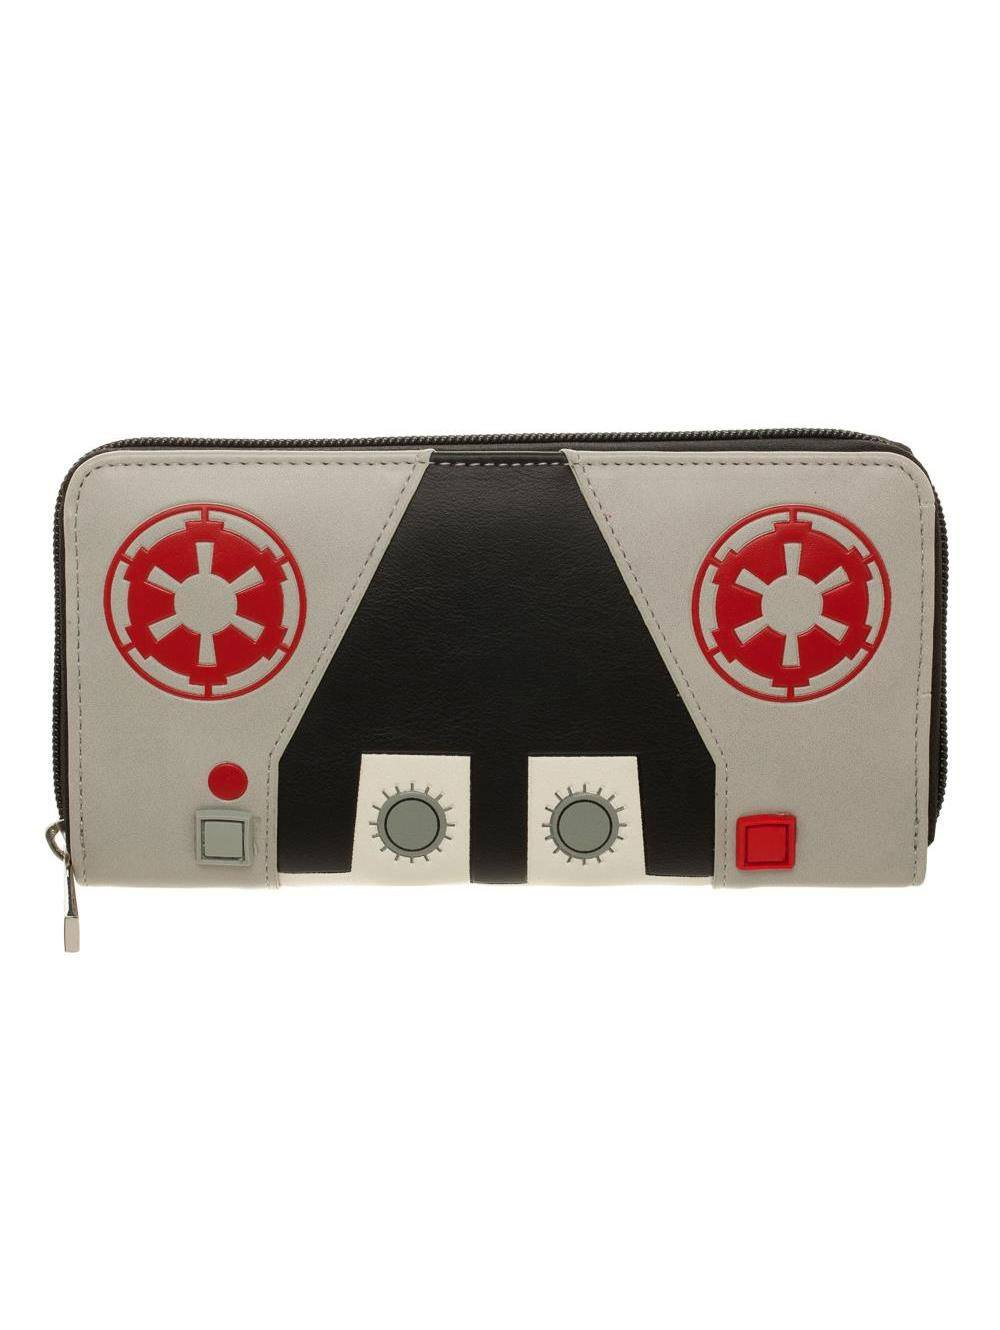 Porte monnaie star wars at at super insolite for Decoration porte star wars